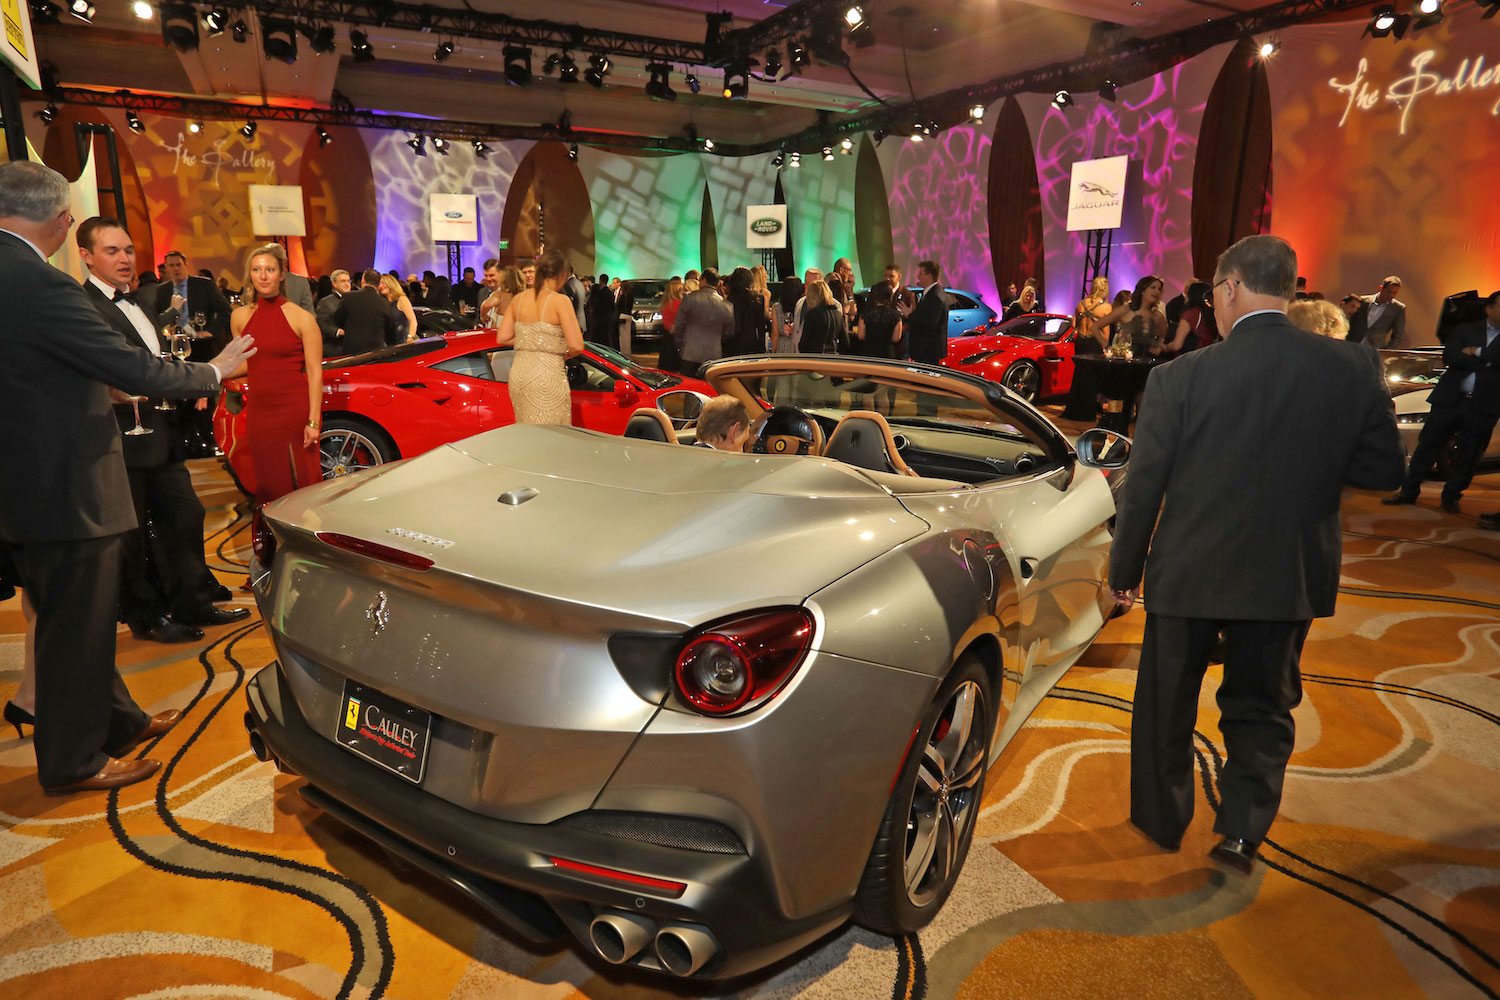 electric car on display at auto show